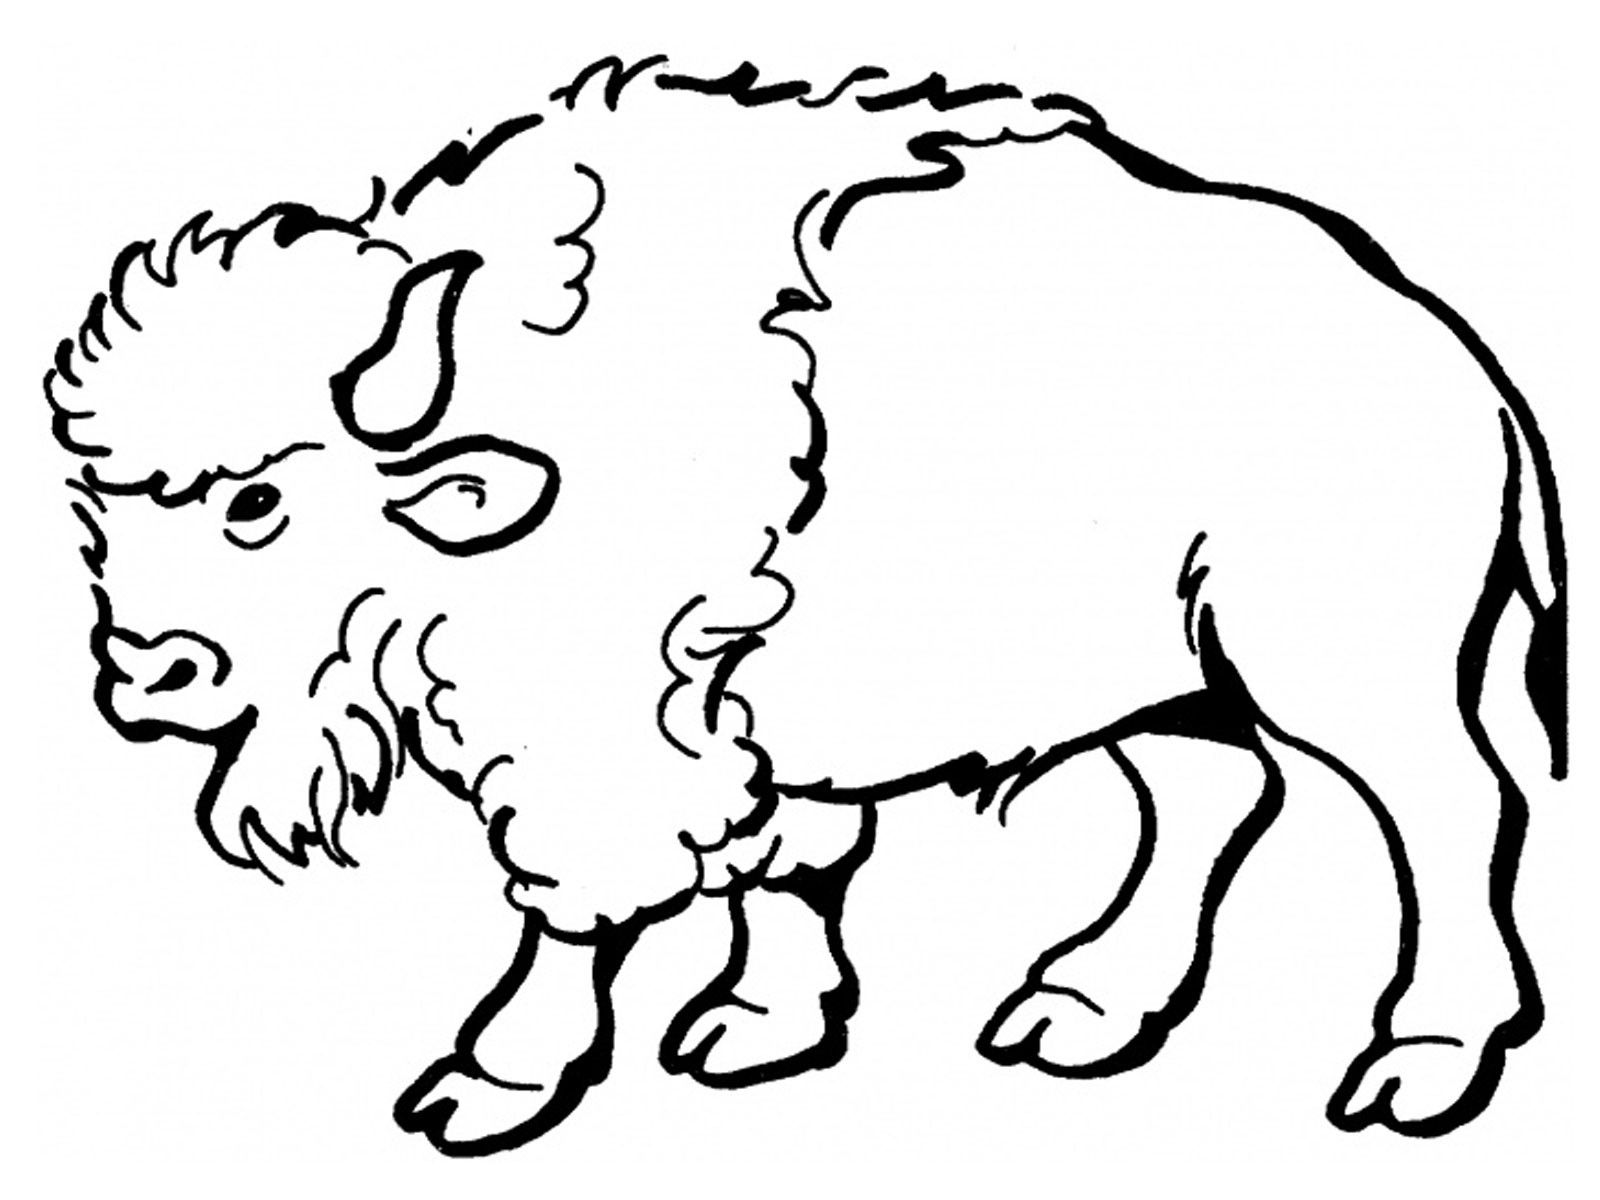 1600x1200 Free Printable Bison Coloring Pages For Kids Easy Art, Rustic